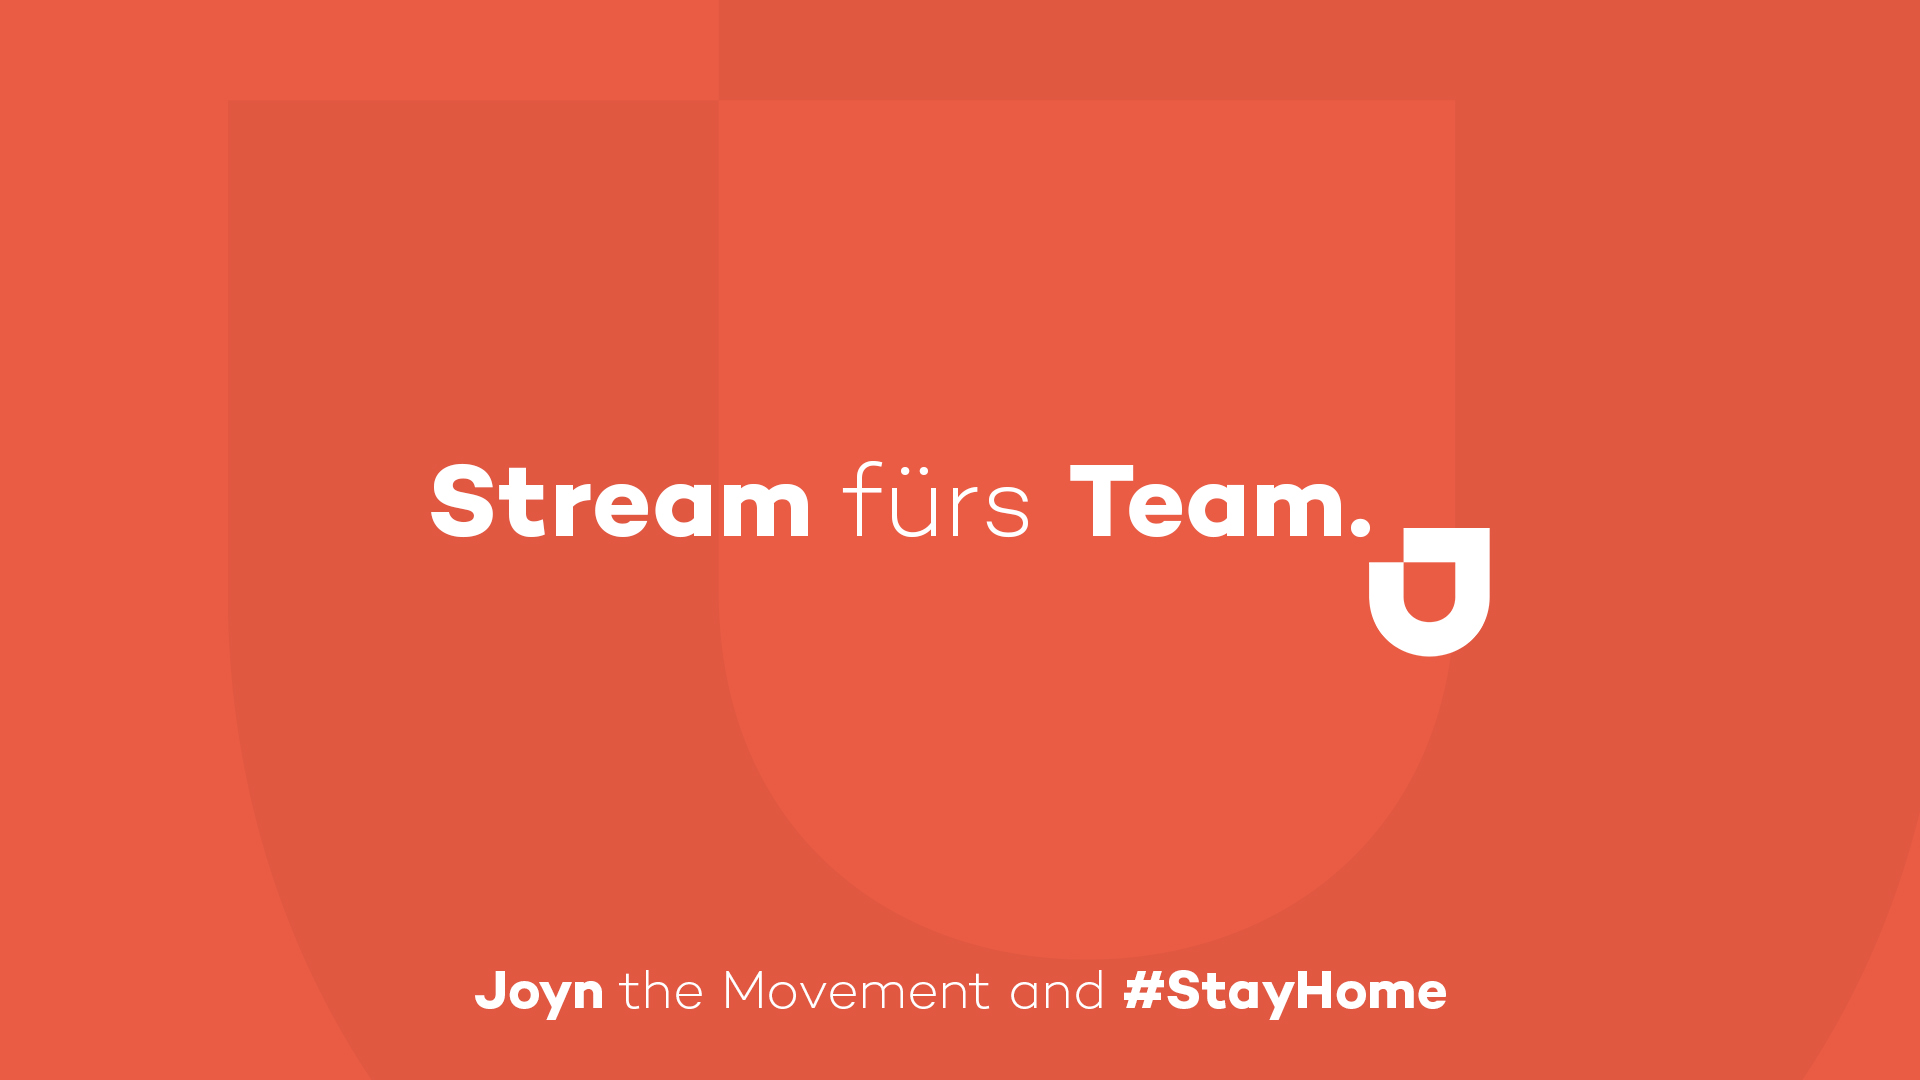 Stream Fürs Team. Joyn The Movement And #stayhome